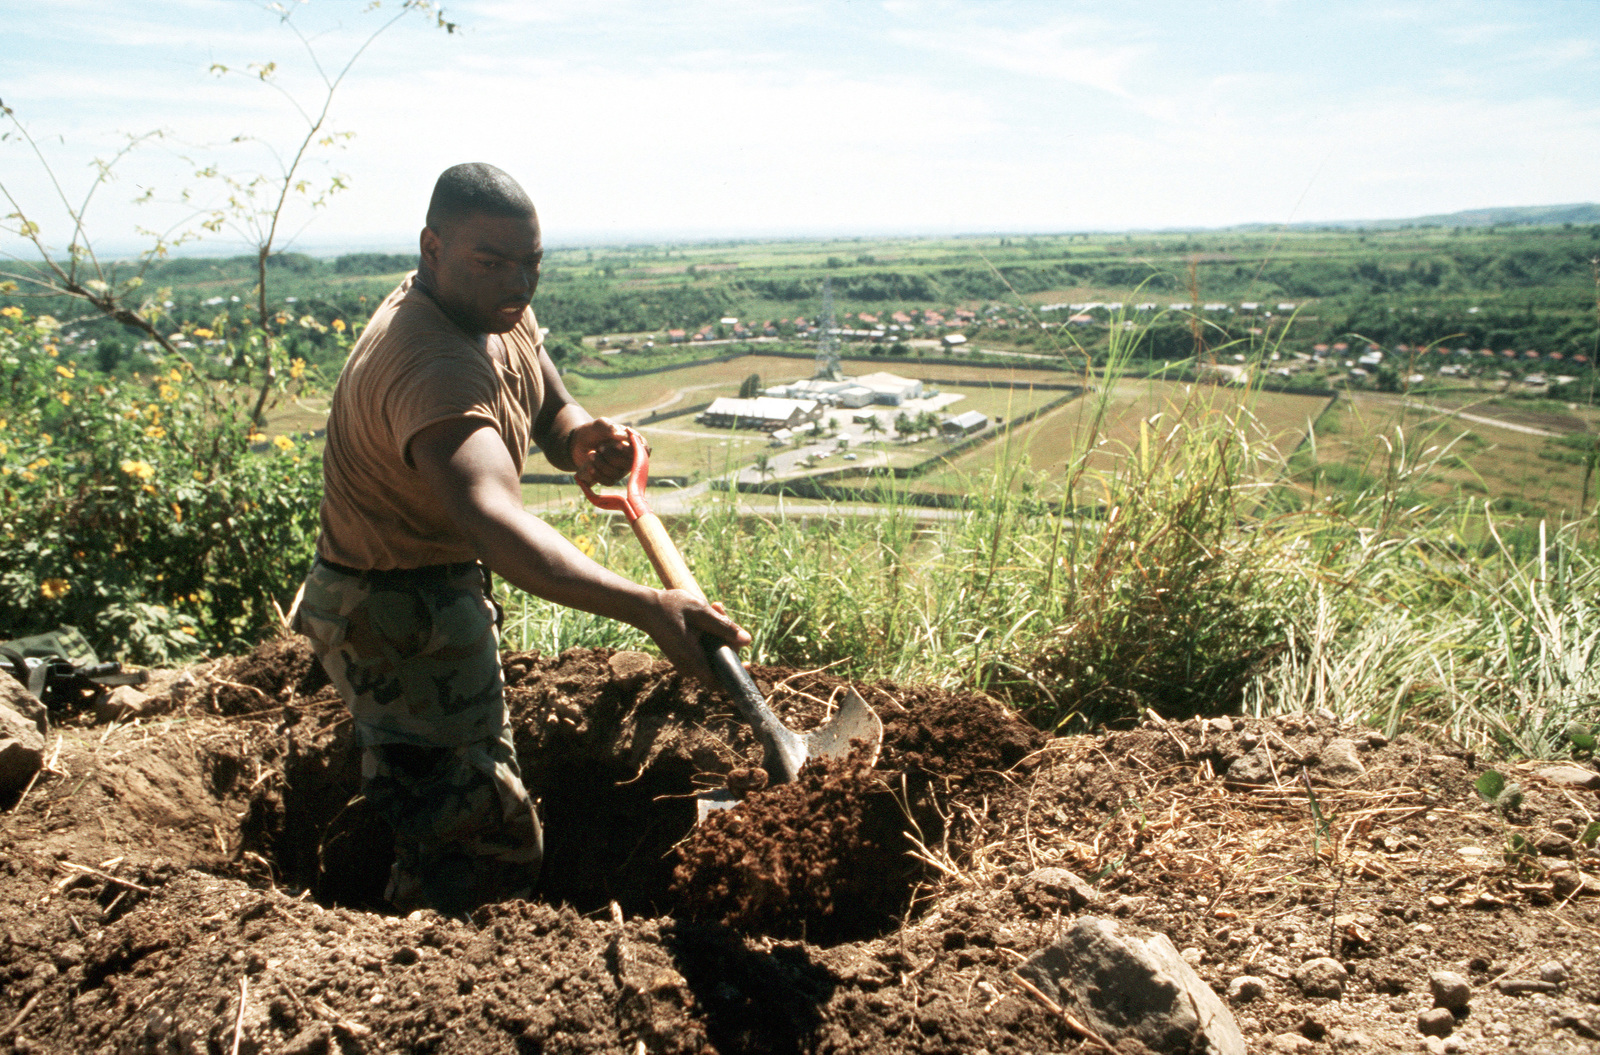 PFC Samuel Baines of the 25th Infantry Division (Light) digs a fighting hole near a fuel depot. U.S. Army troops that were in the Philippines for an exercise have been called upon to augment base security forces as the Filipino government fights to put down a coup attempt by rebel factions within the nation's armed forces